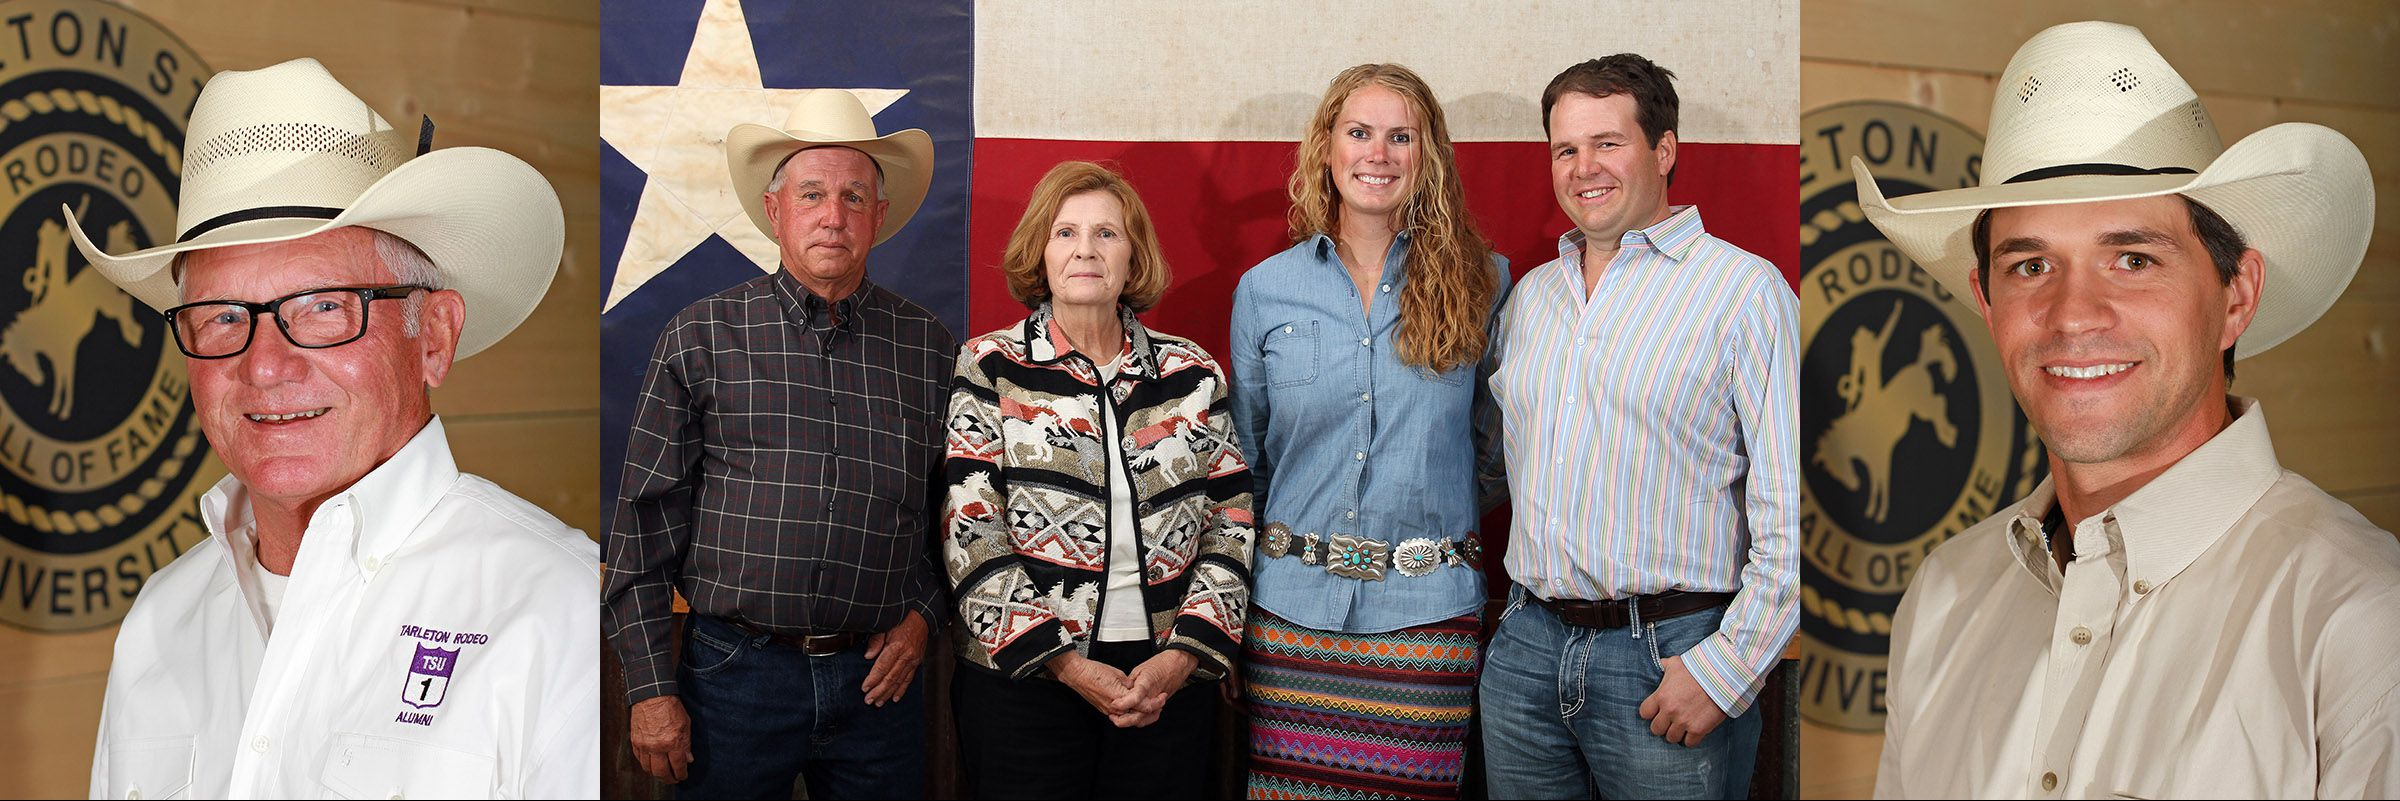 2017 Tarleton Rodeo Hall of Fame Inductees